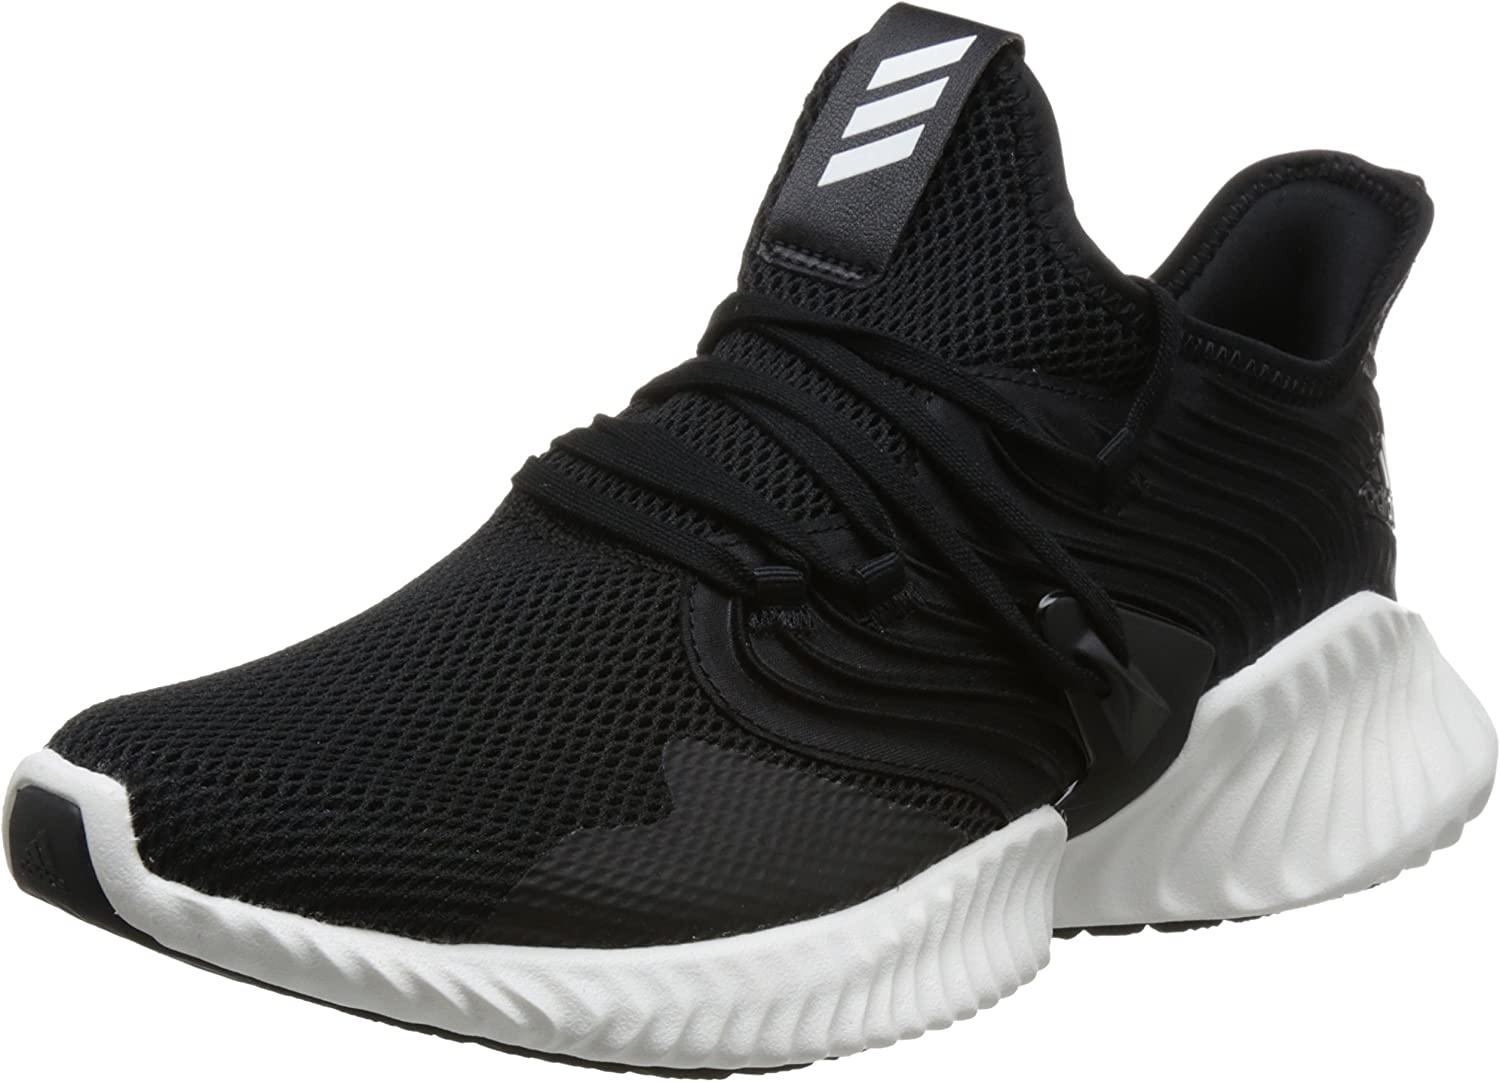 adidas Men's Alphabounce Instinct CC M, BlackWhite, 10.5 M US